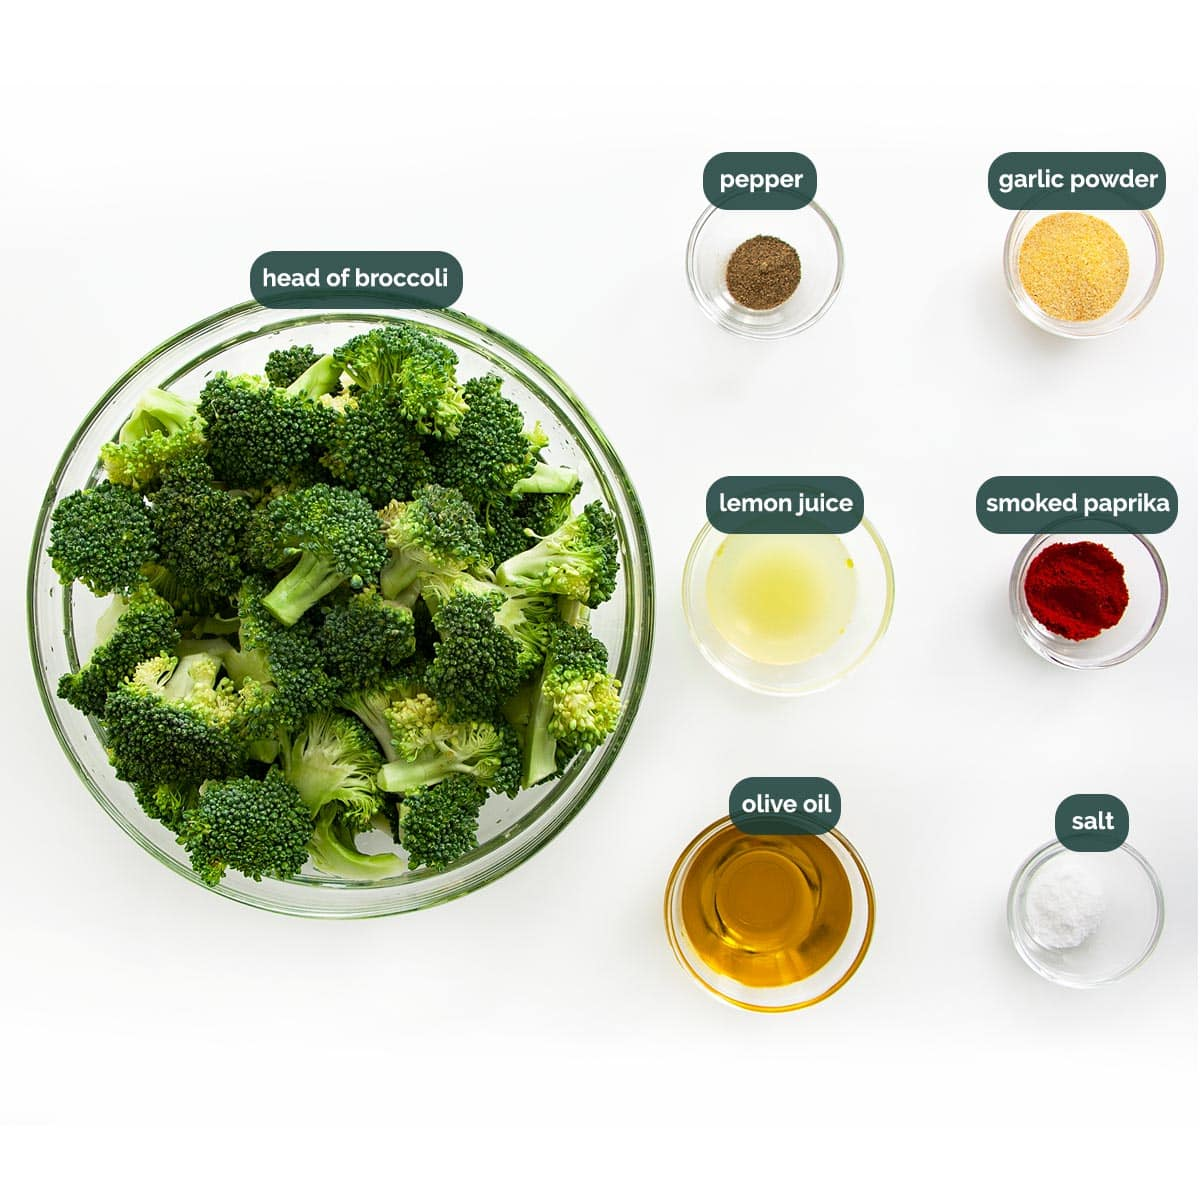 overhead shot of all the ingredients needed to make roasted broccoli.